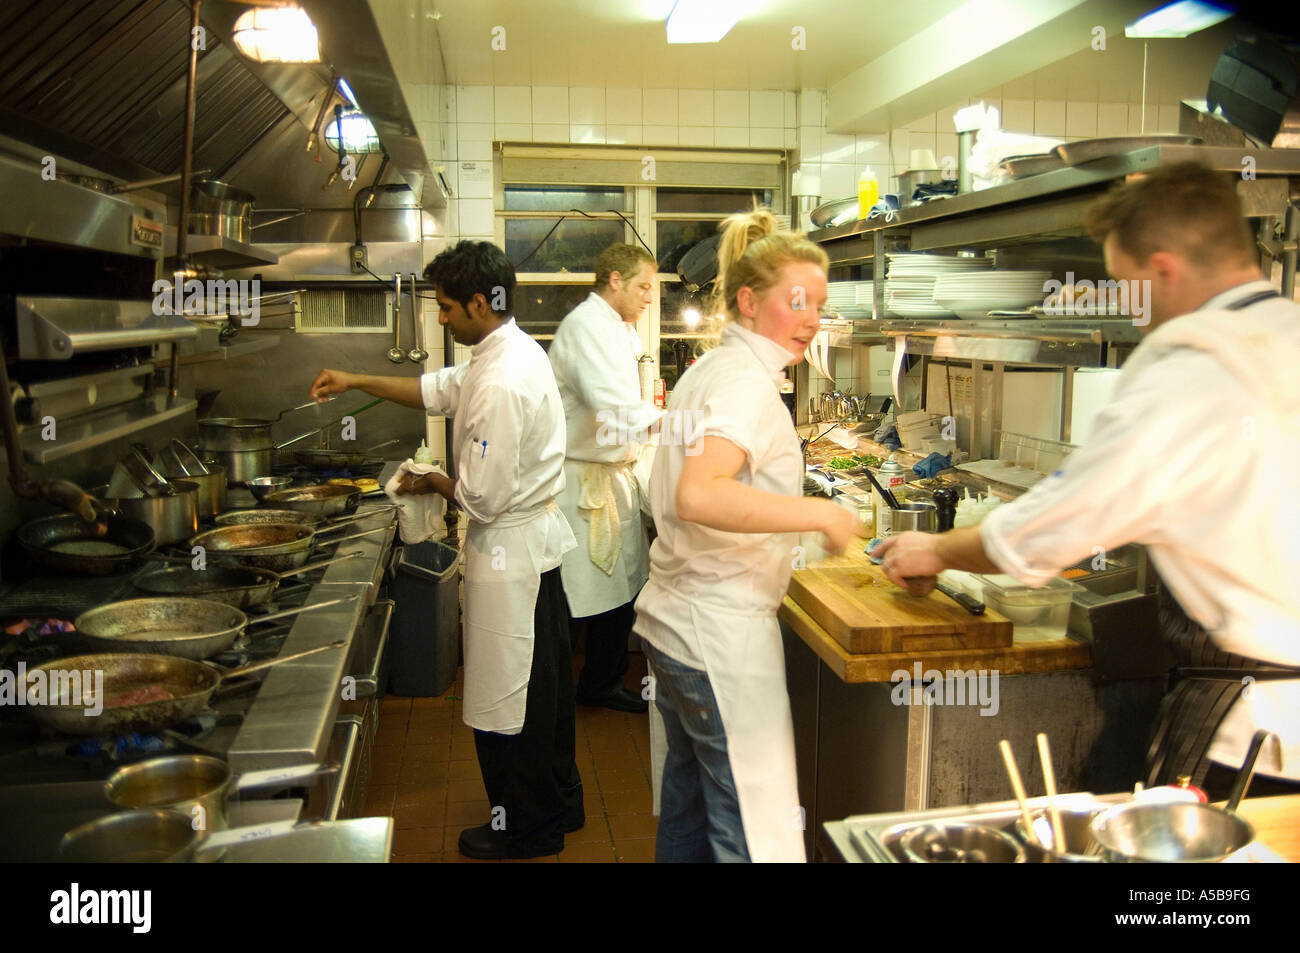 Team of restaurant kitchen staff busy at work stock photo for Kitchen 8 restaurant